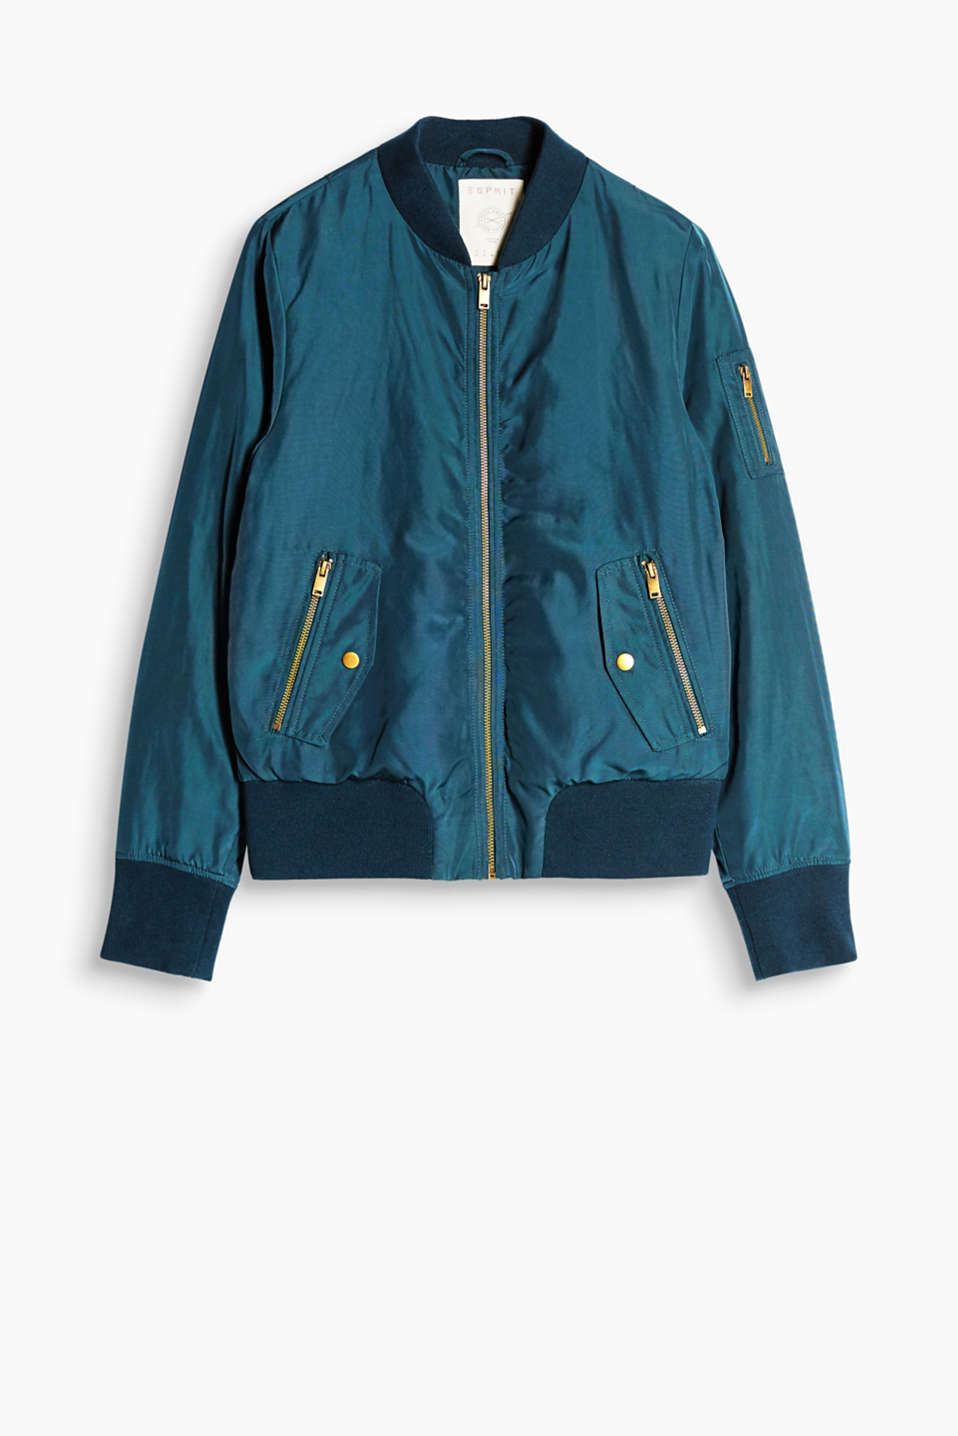 Padded bomber jacket with an exquisite sheen